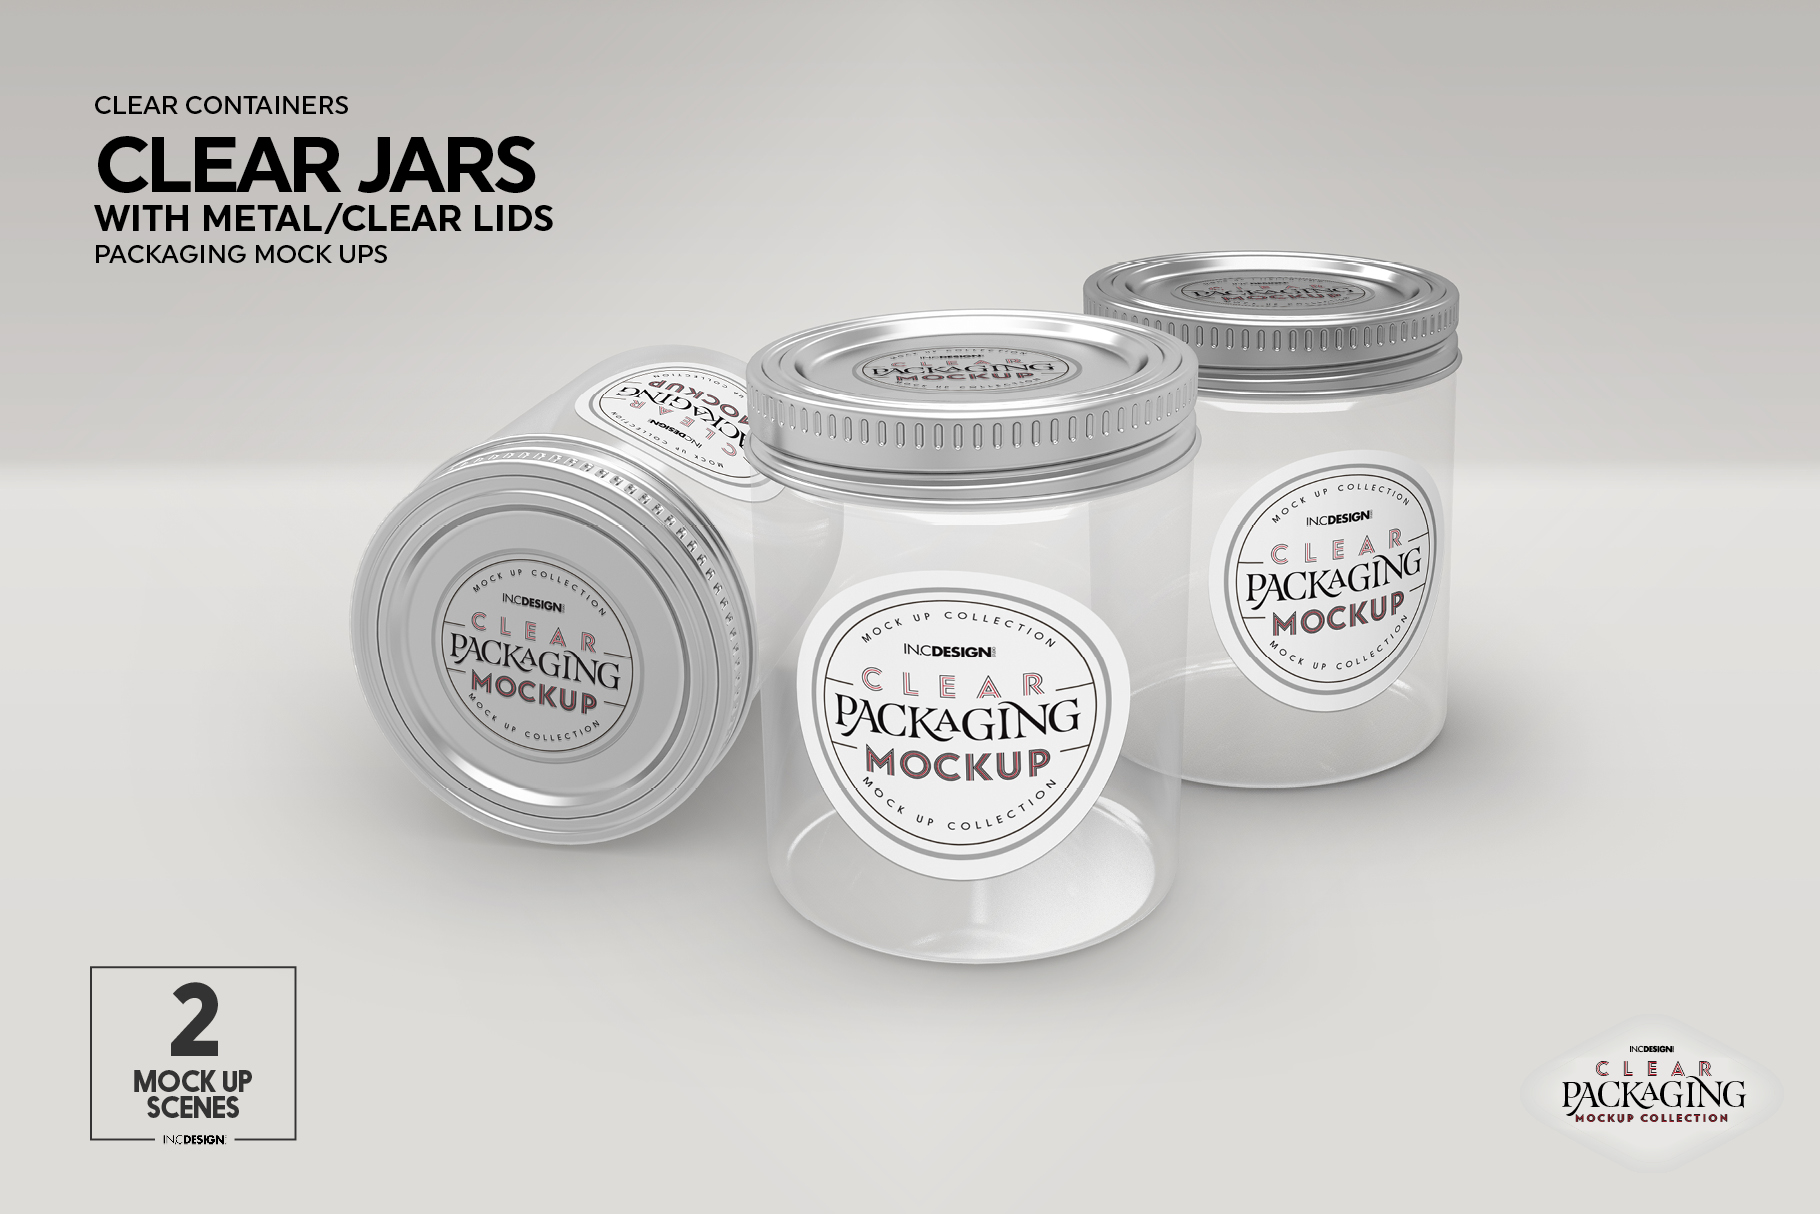 Clear Jars with Metal /Clear Lids Mockup example image 11